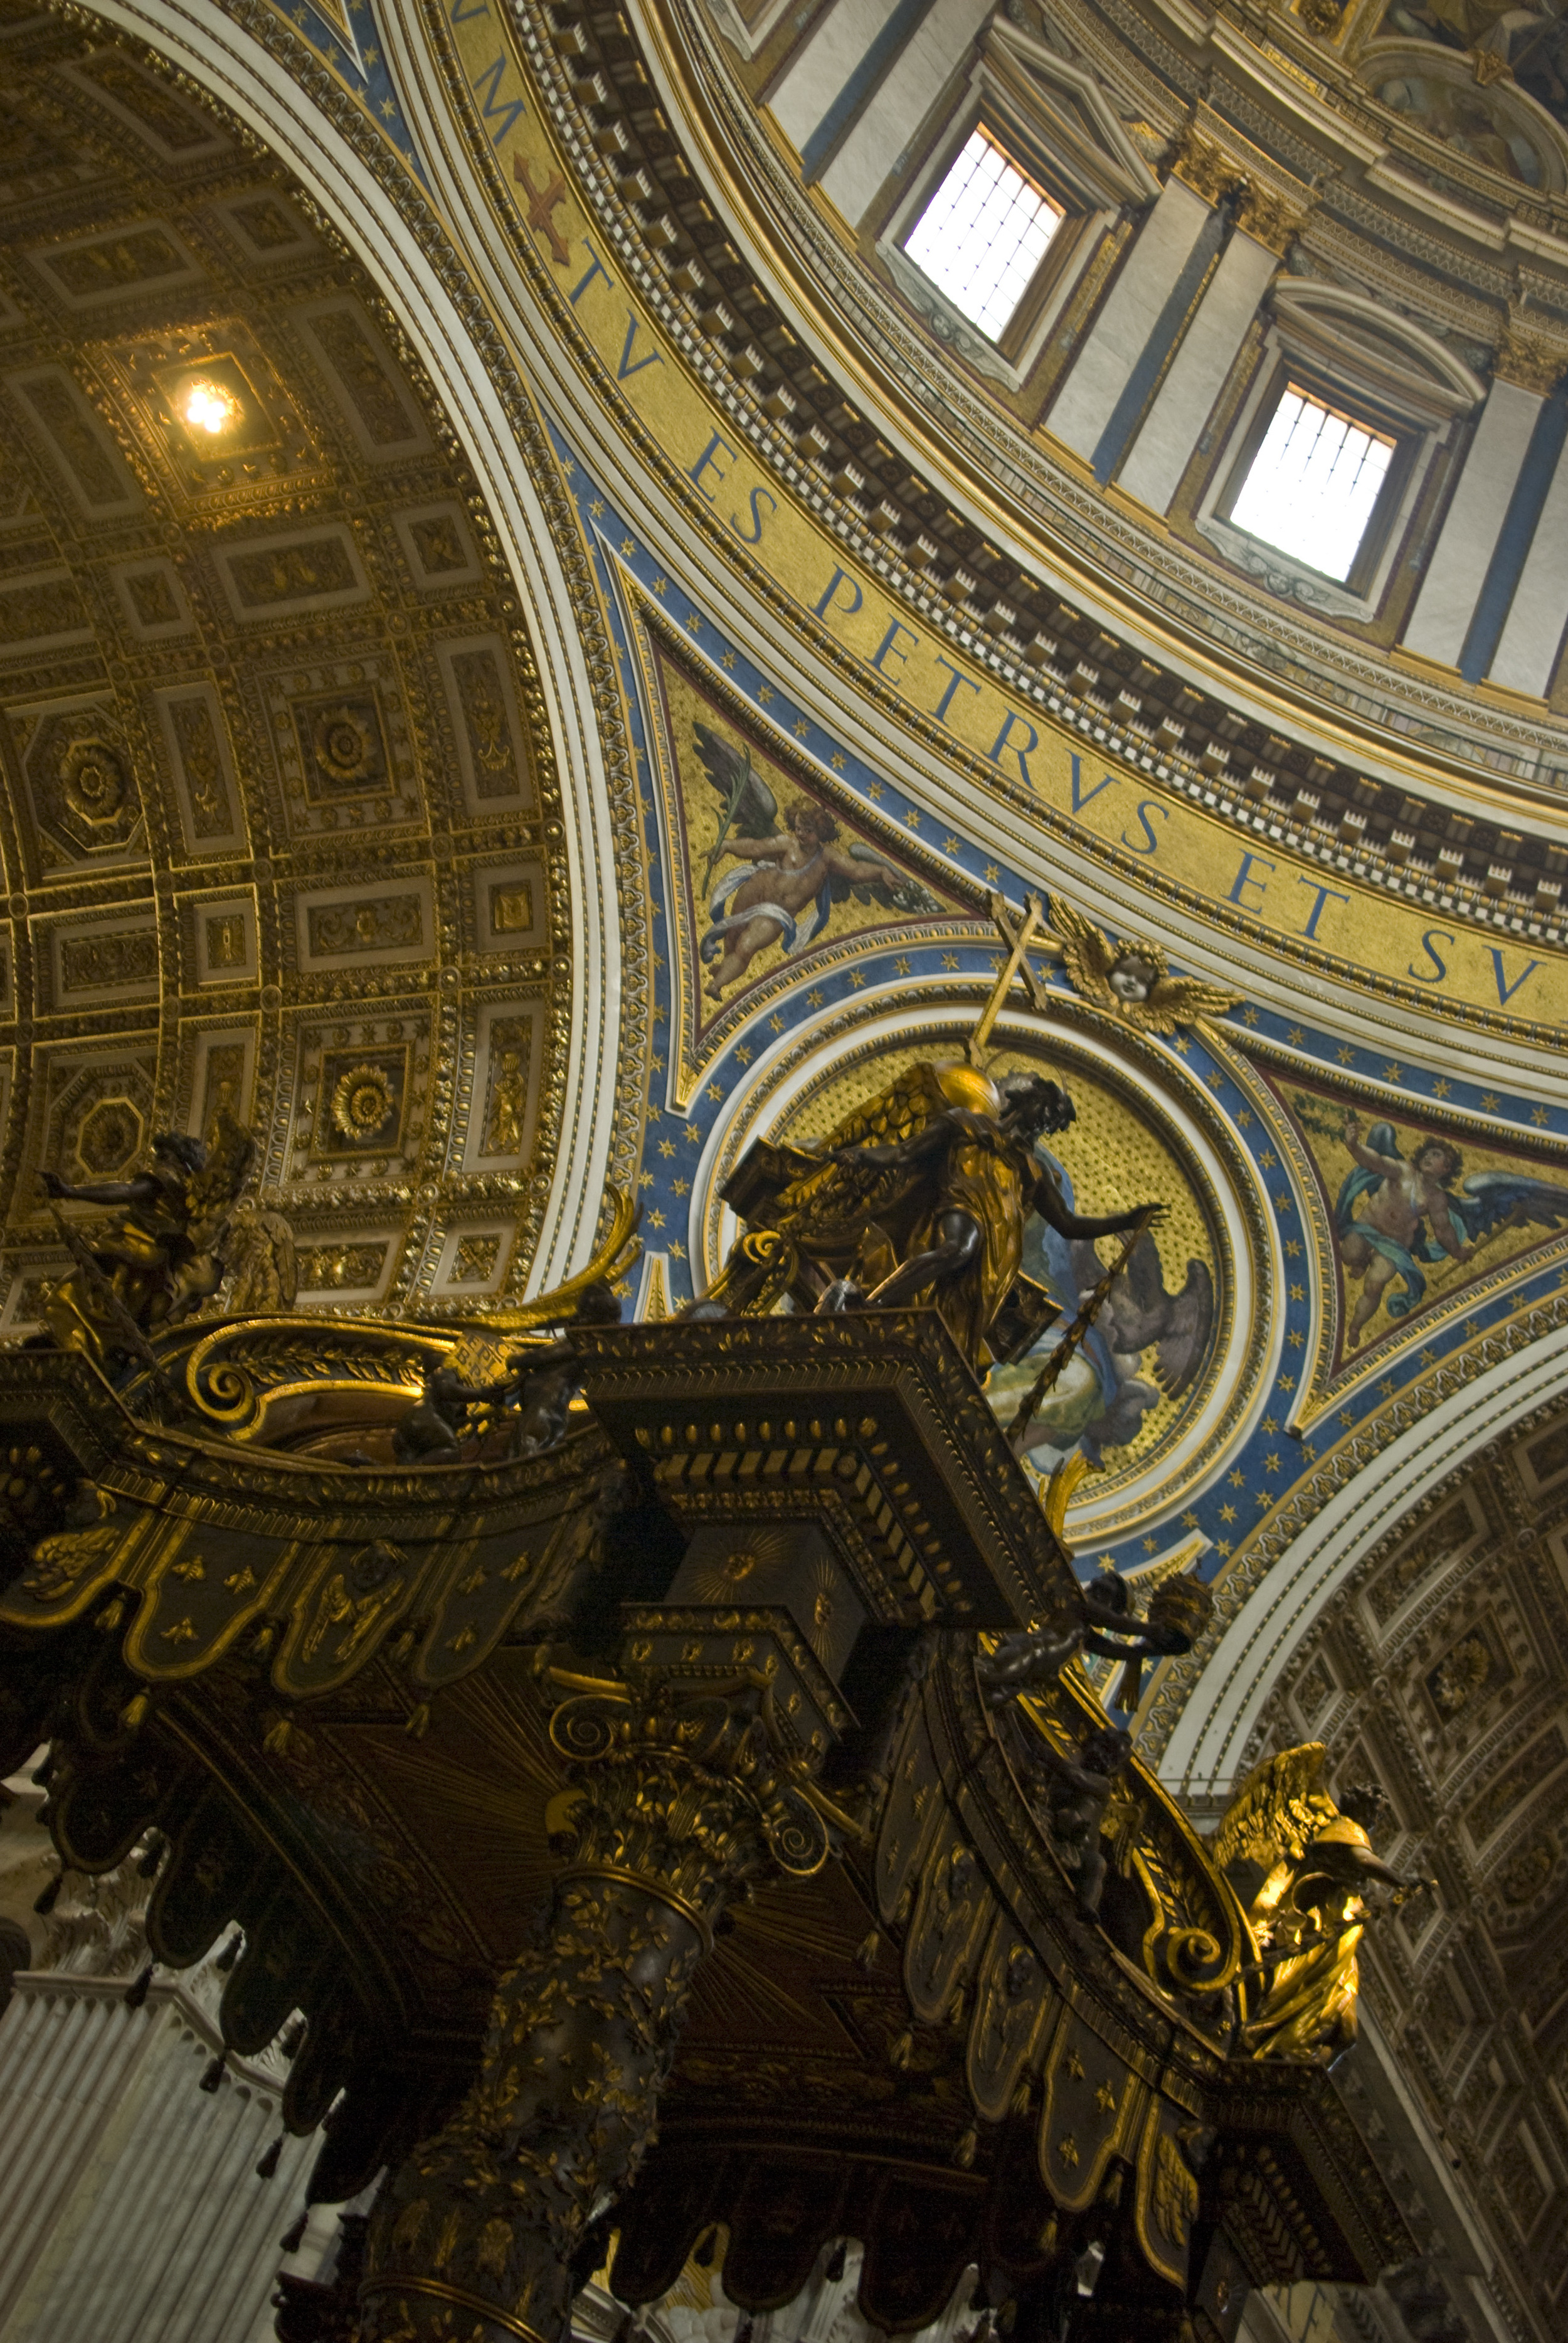 st-peters-basilica_4798951705_o.jpg